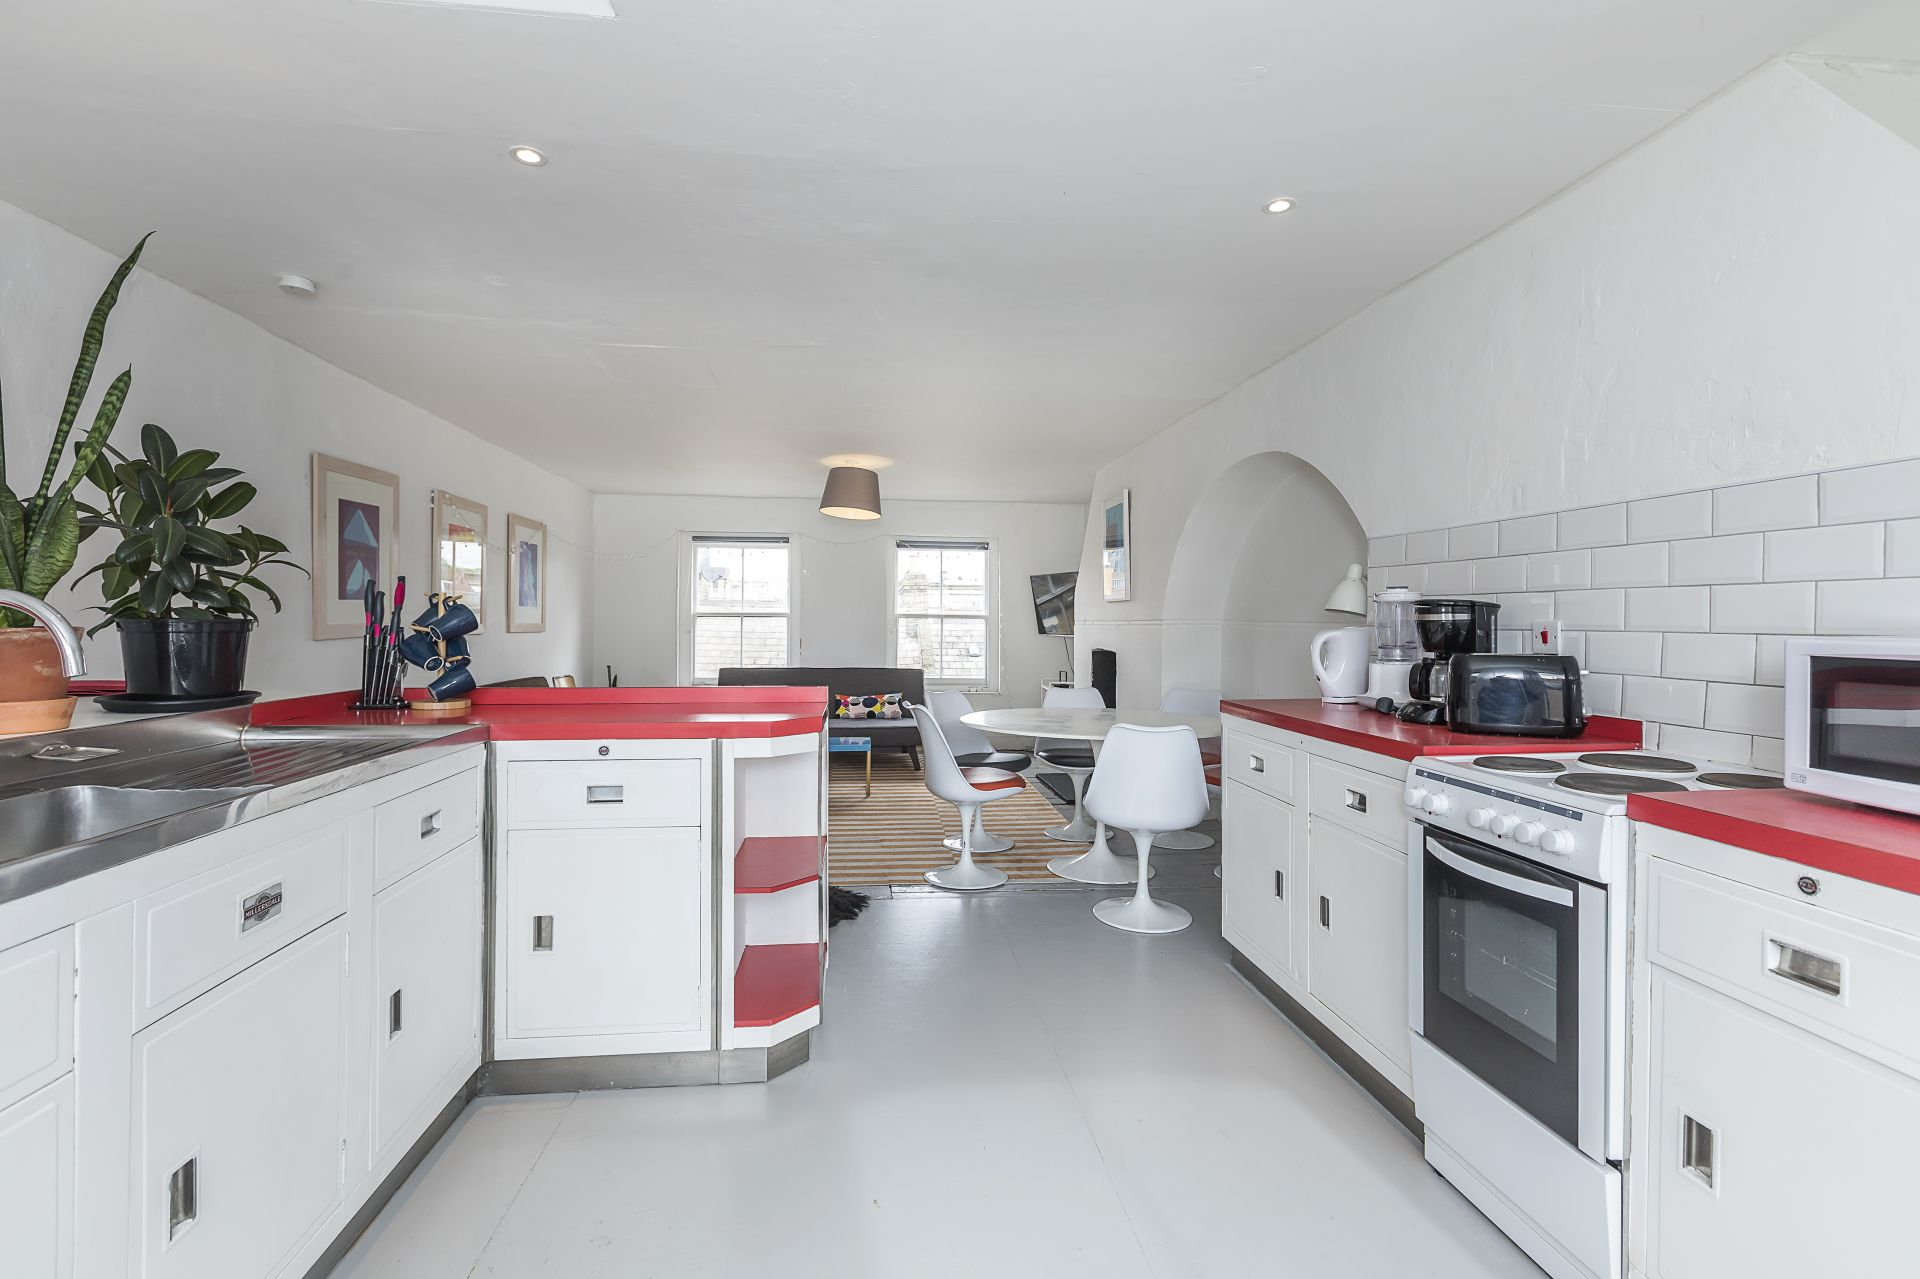 4 bedroom  Terraced House to rent in London E1